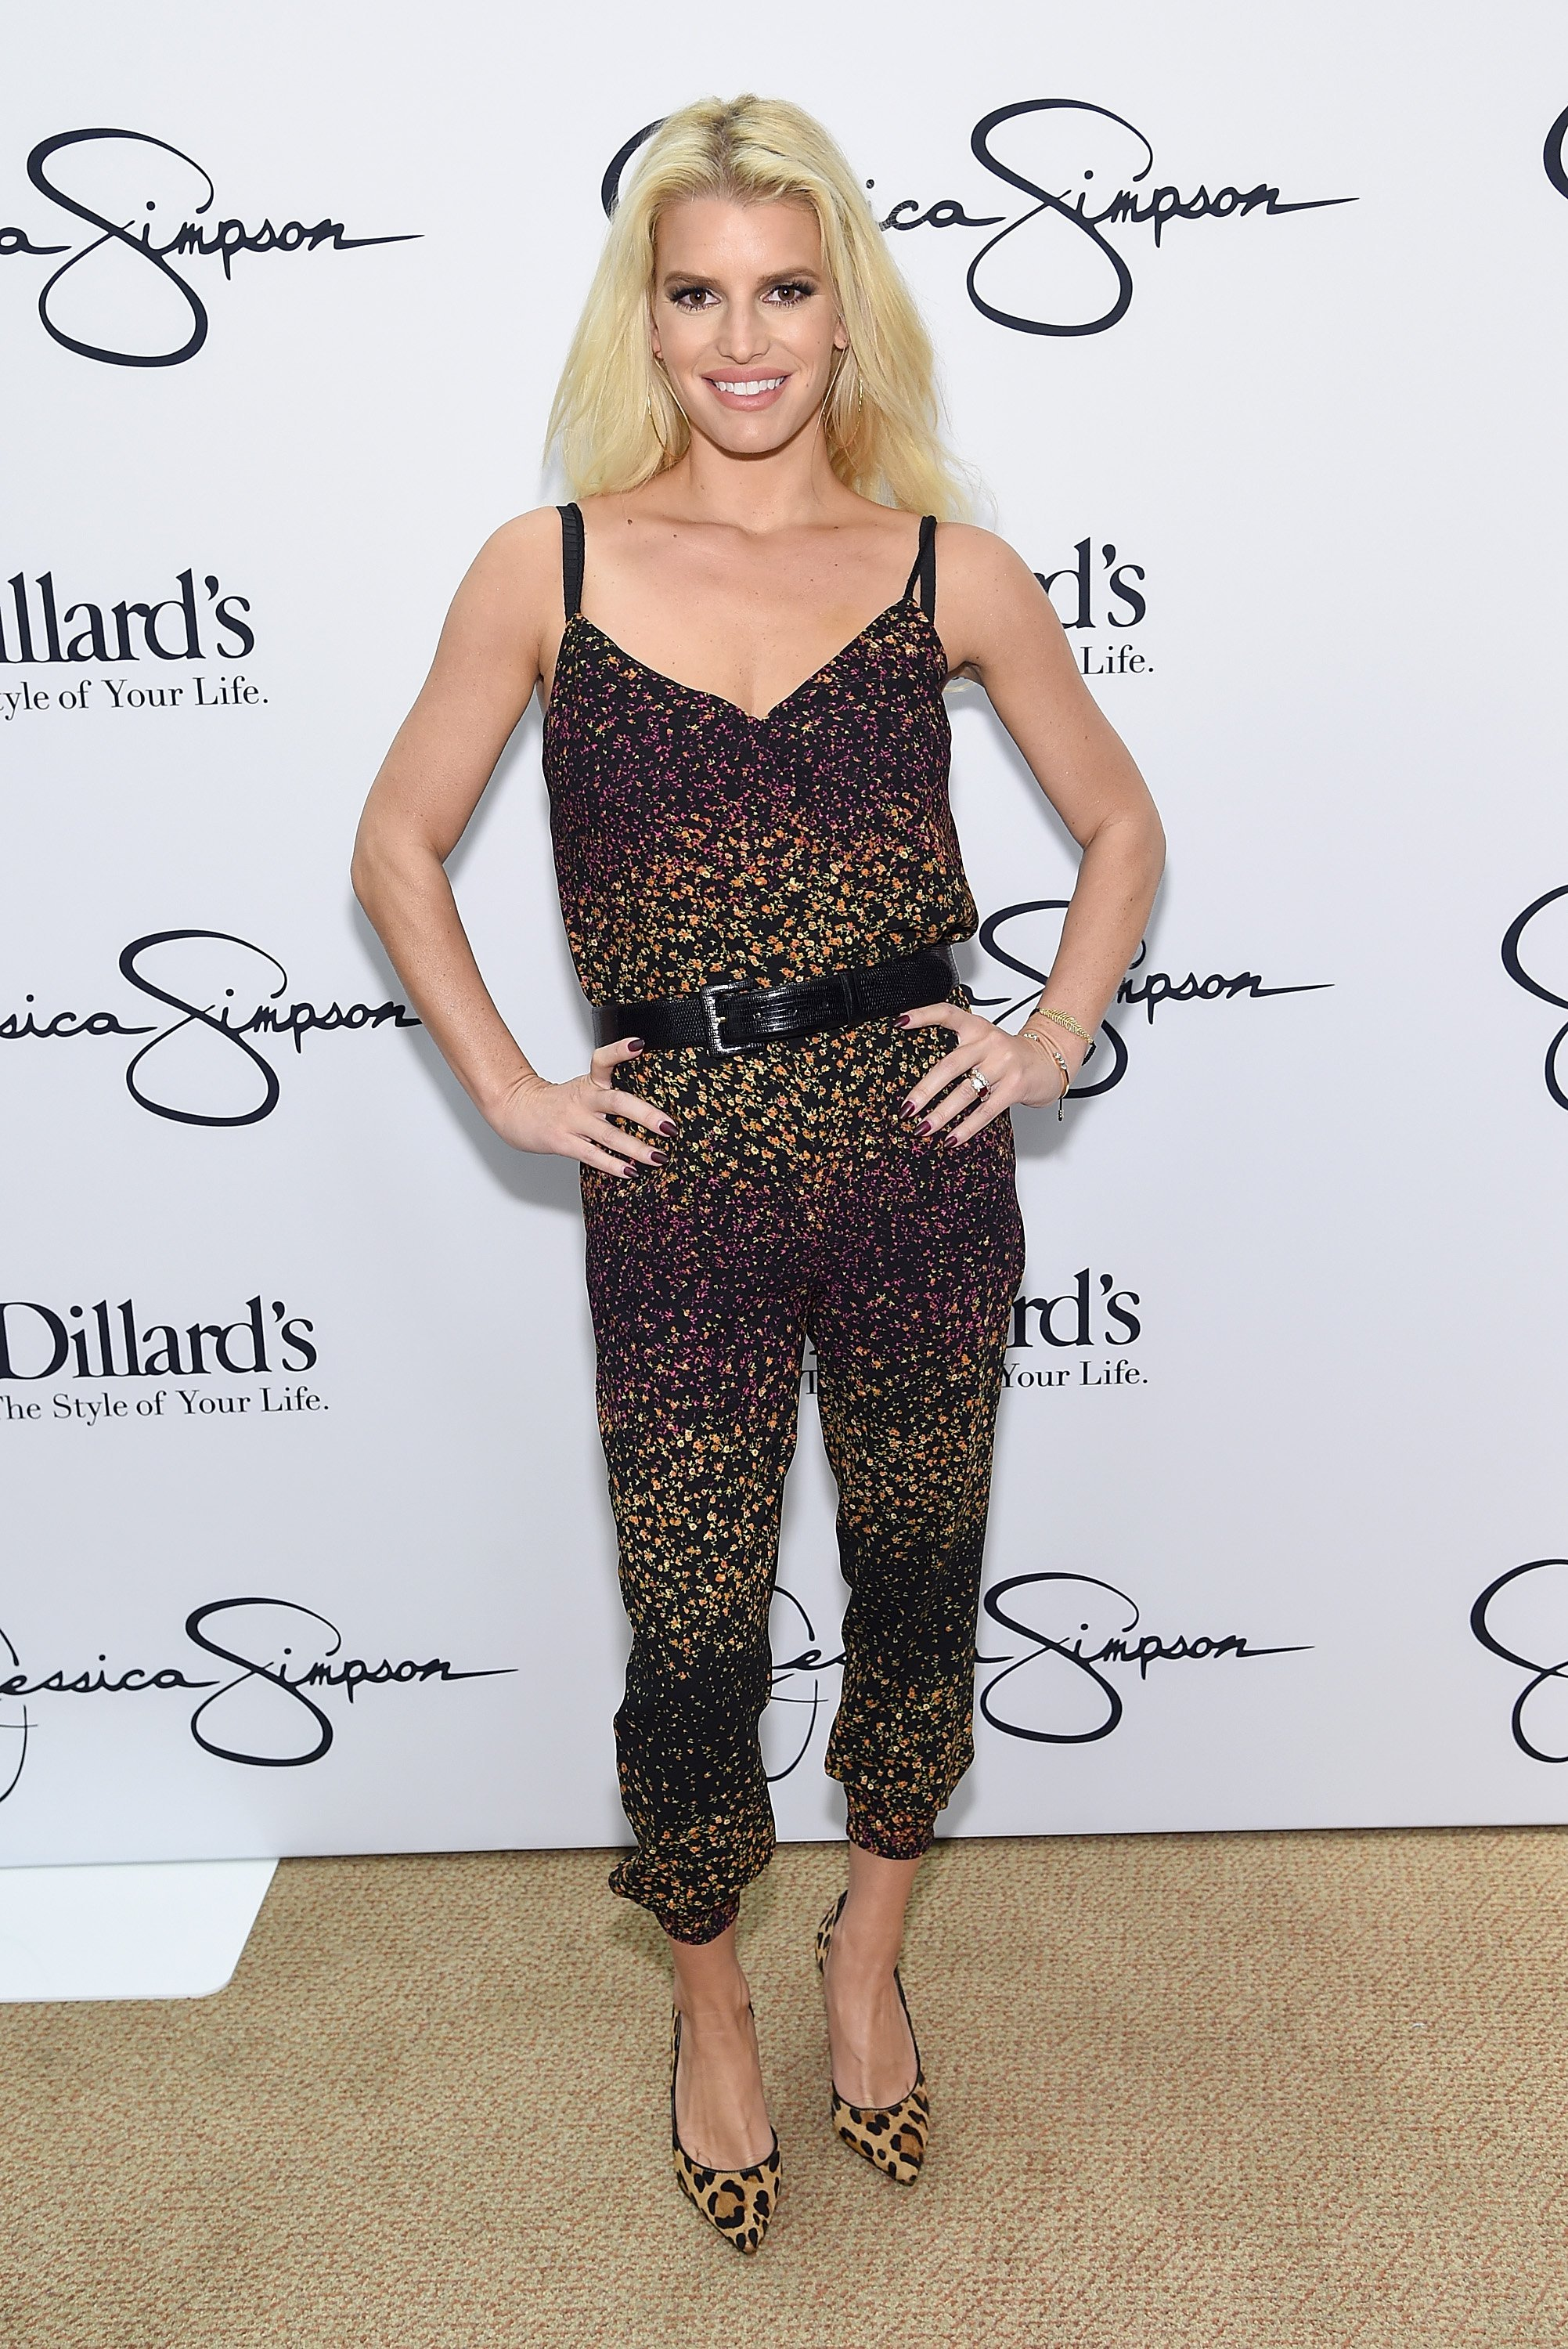 Jessica Simpson at Dillard's Perimeter Mall on October 11, 2014 in Atlanta, Georgia. | Source: Getty Images.